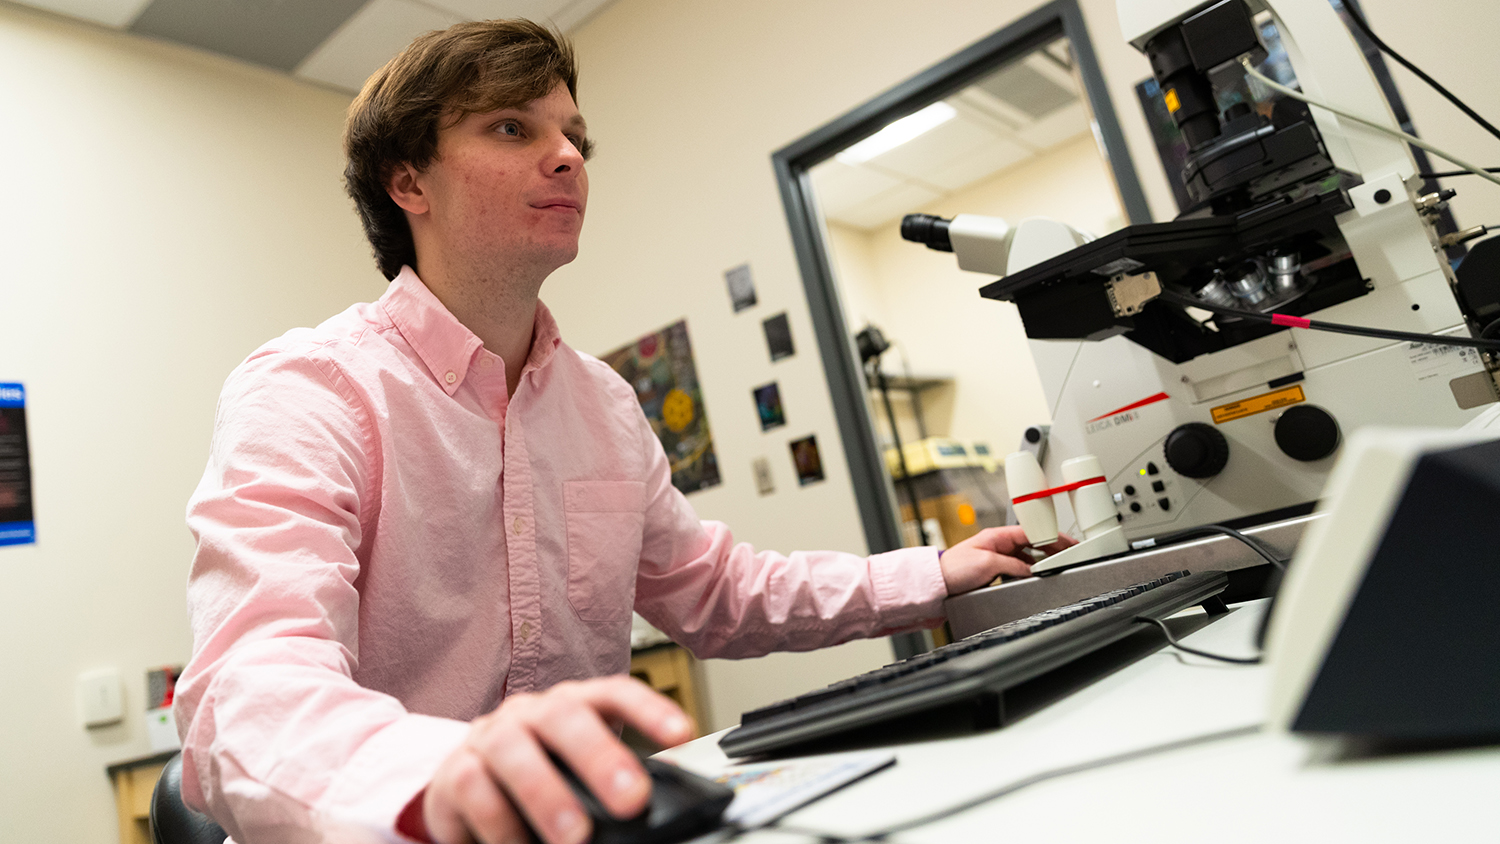 A young man sits at a microscope in a lab.